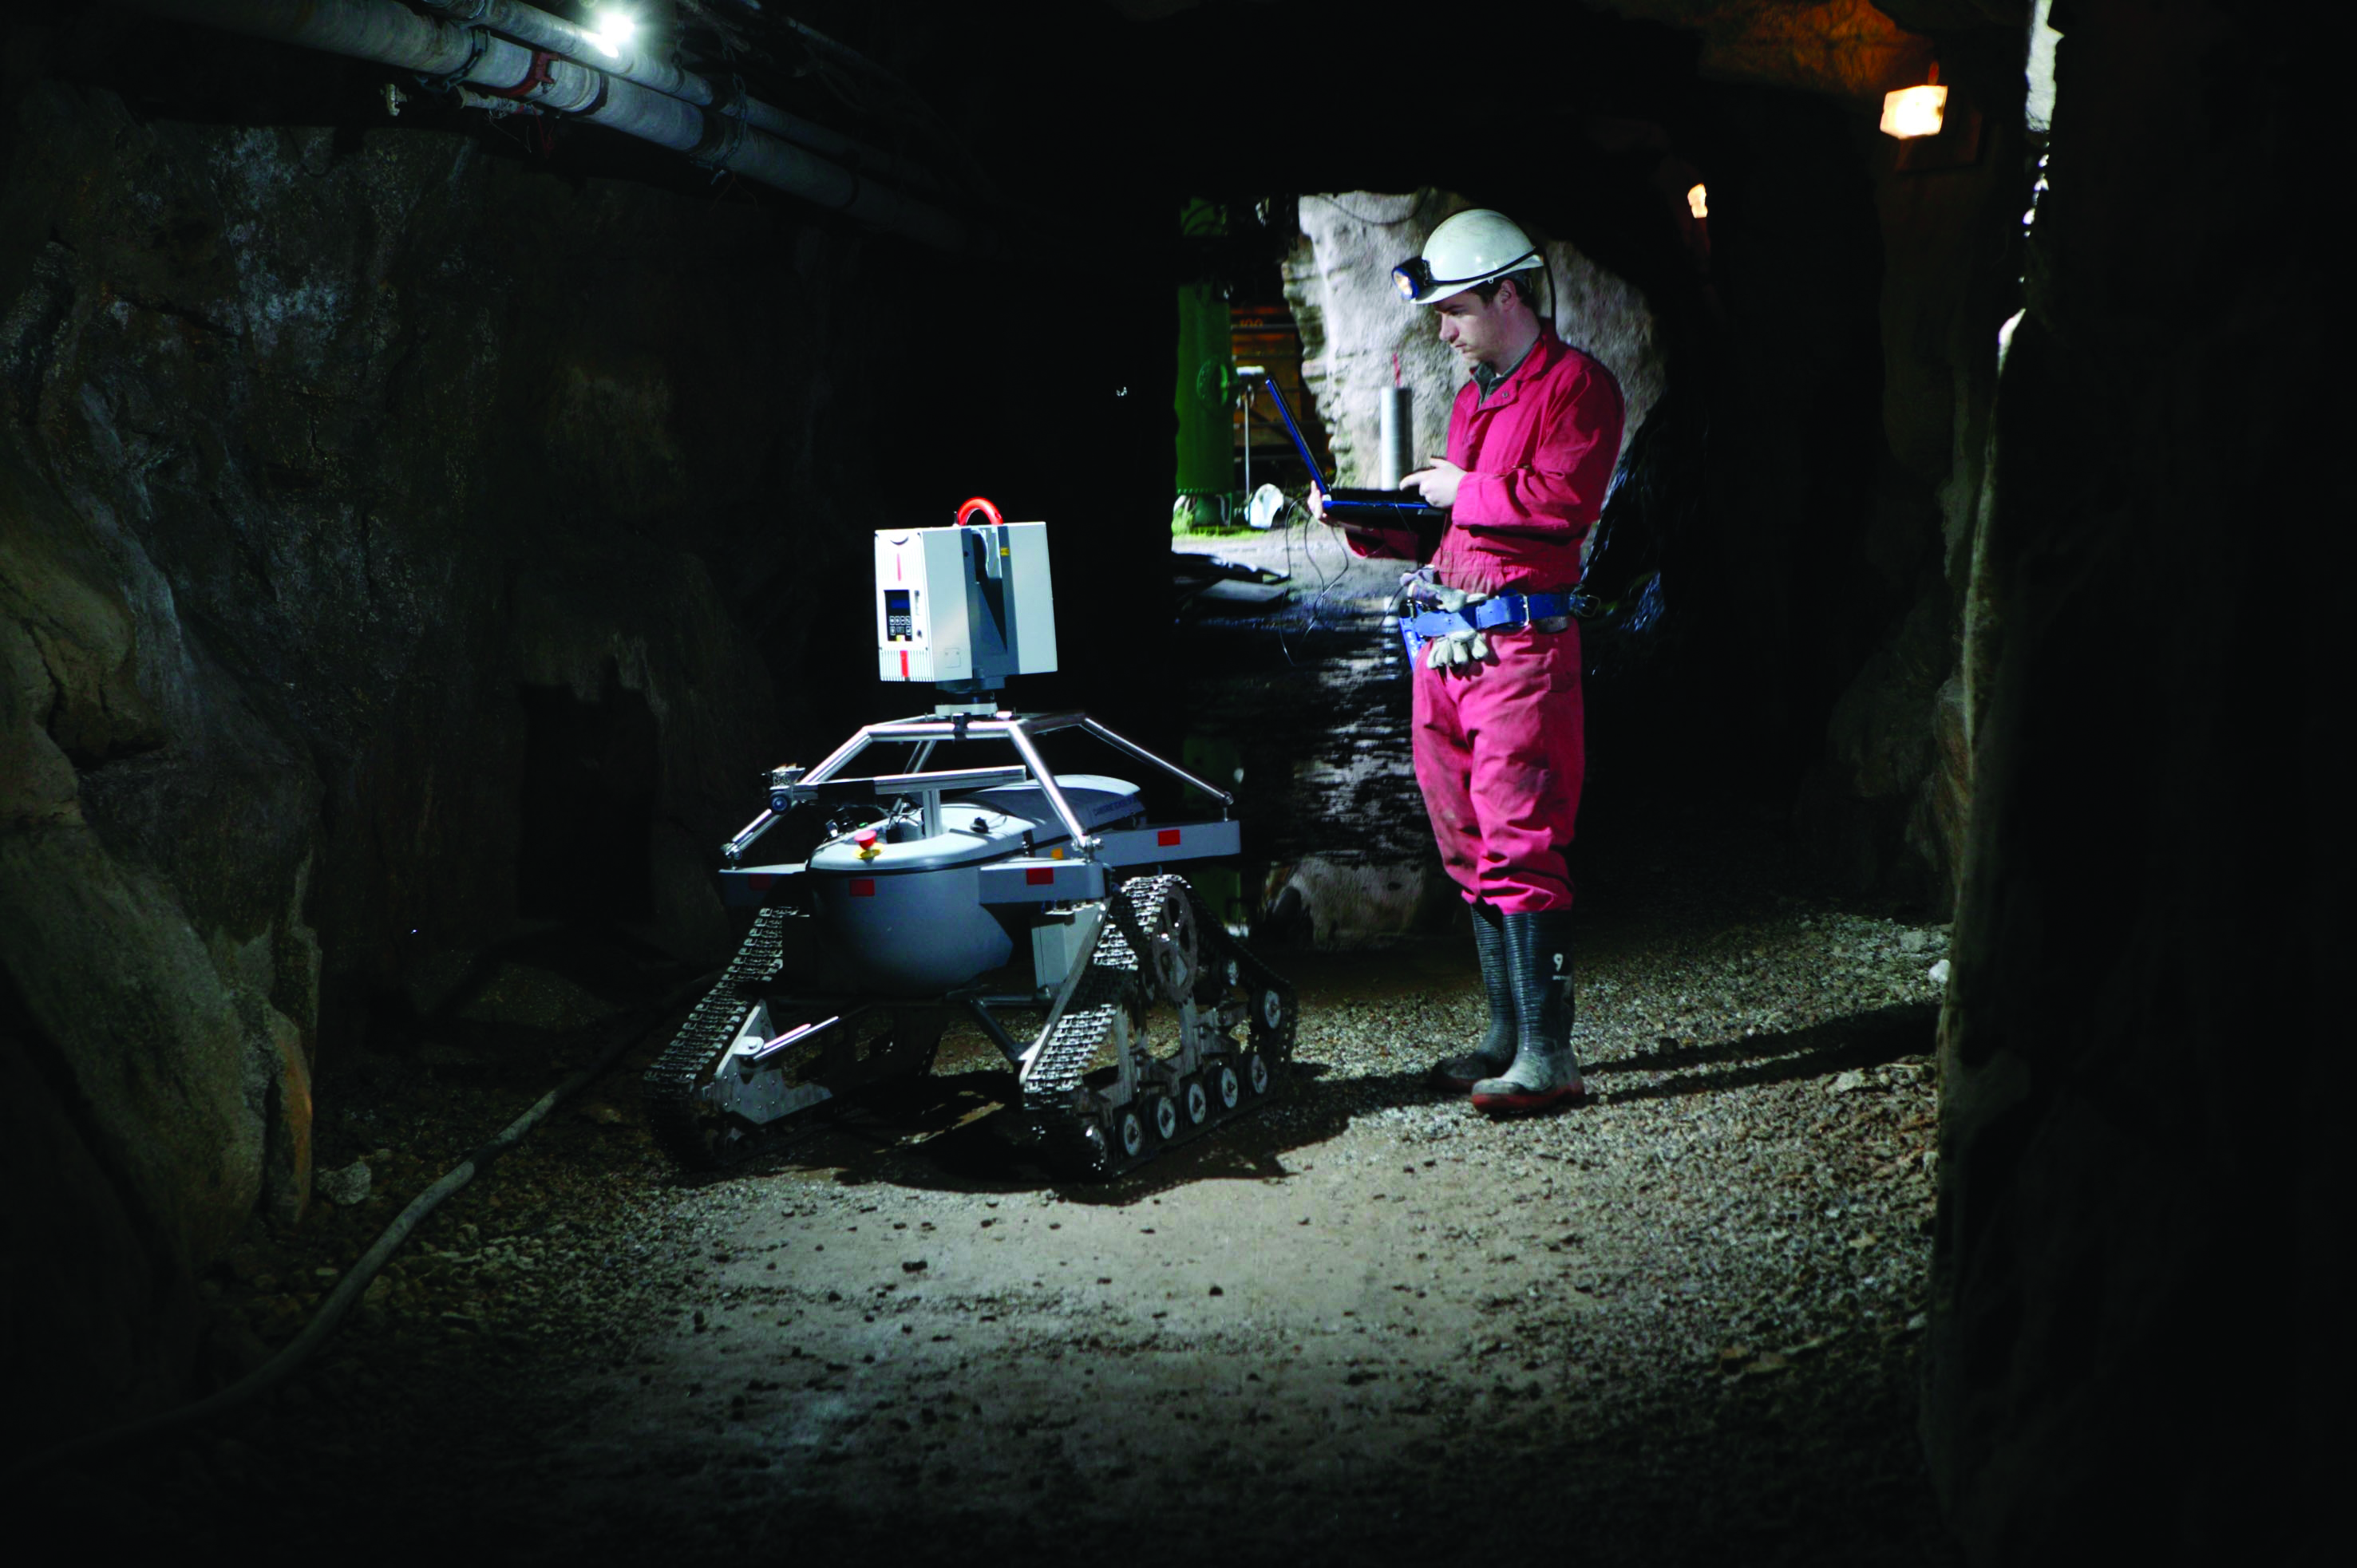 Students uses robot to survey rocks in mine